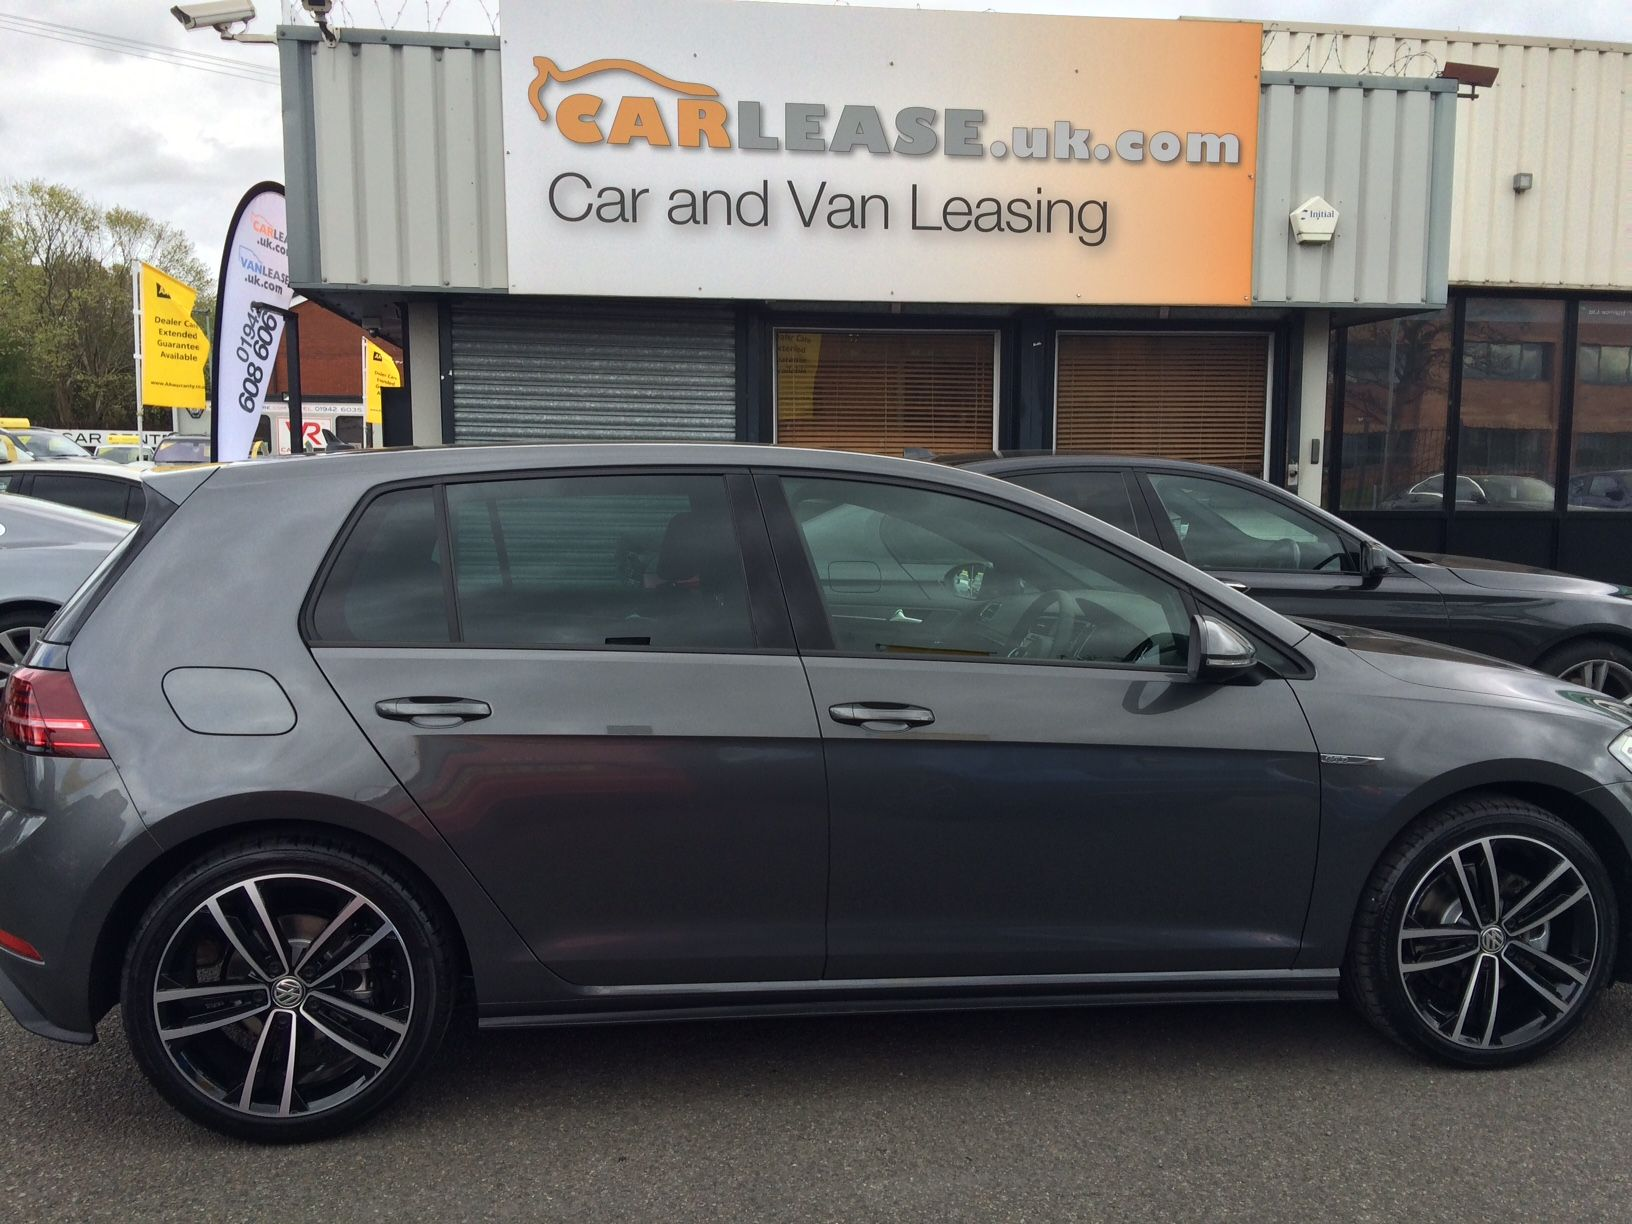 The Volkswagen Golf Gtd Carleasing Deal One Of Many Cars And Vans Available